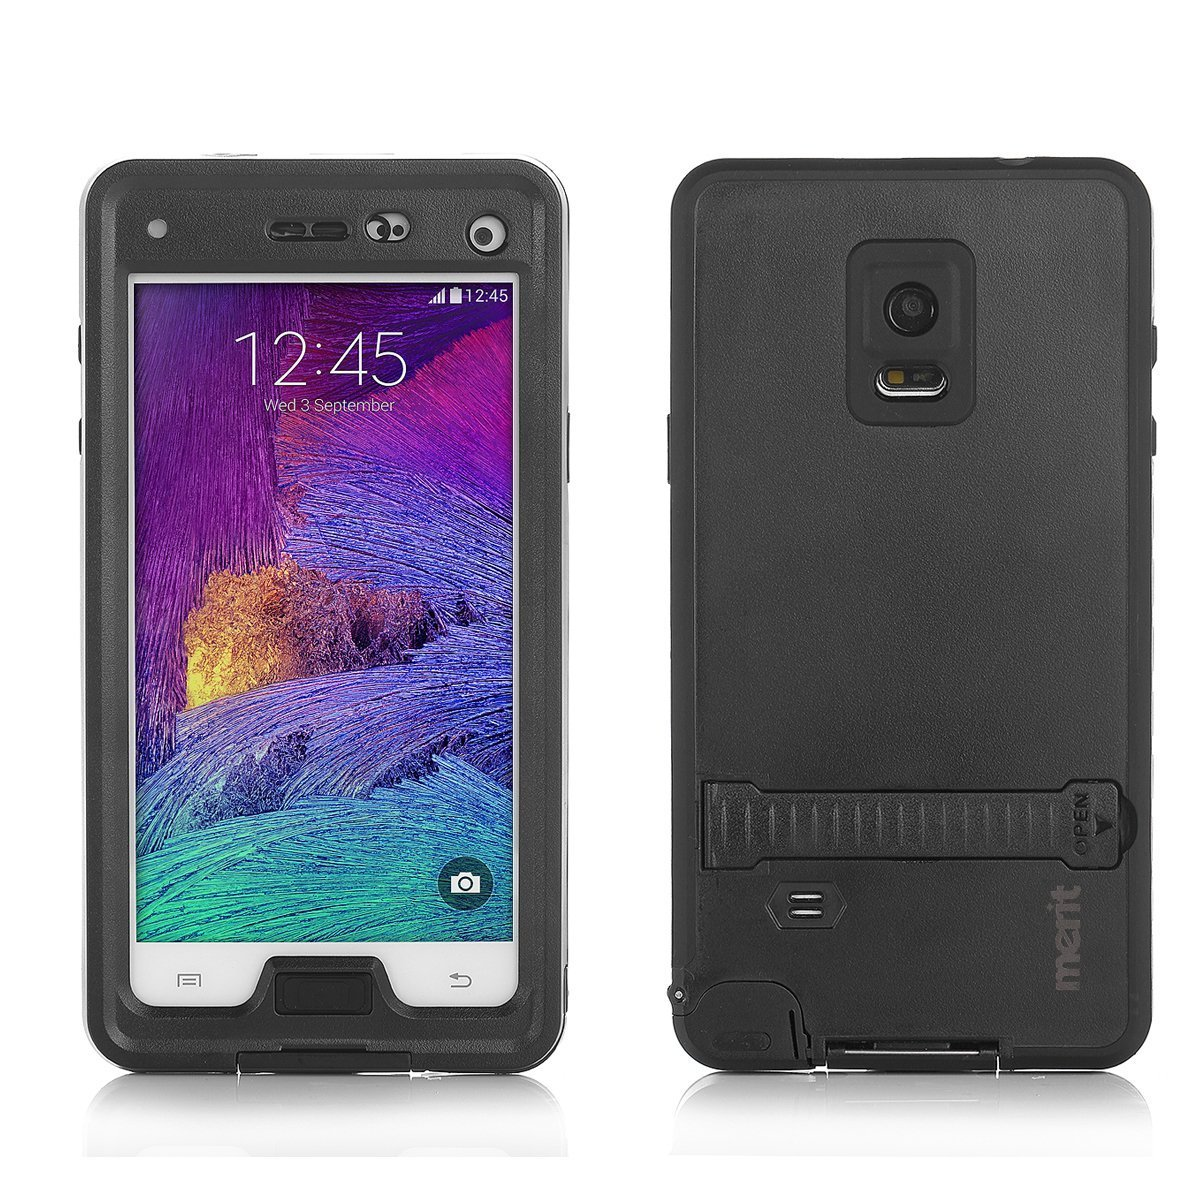 promo code 82323 c8328 Merit™ Galaxy Note 4 Waterproof Case 6.6ft Underwater Waterproof Shockproof  Snowproof Dirtpoof Protection Case Cover with Kickstand for Samsung ...